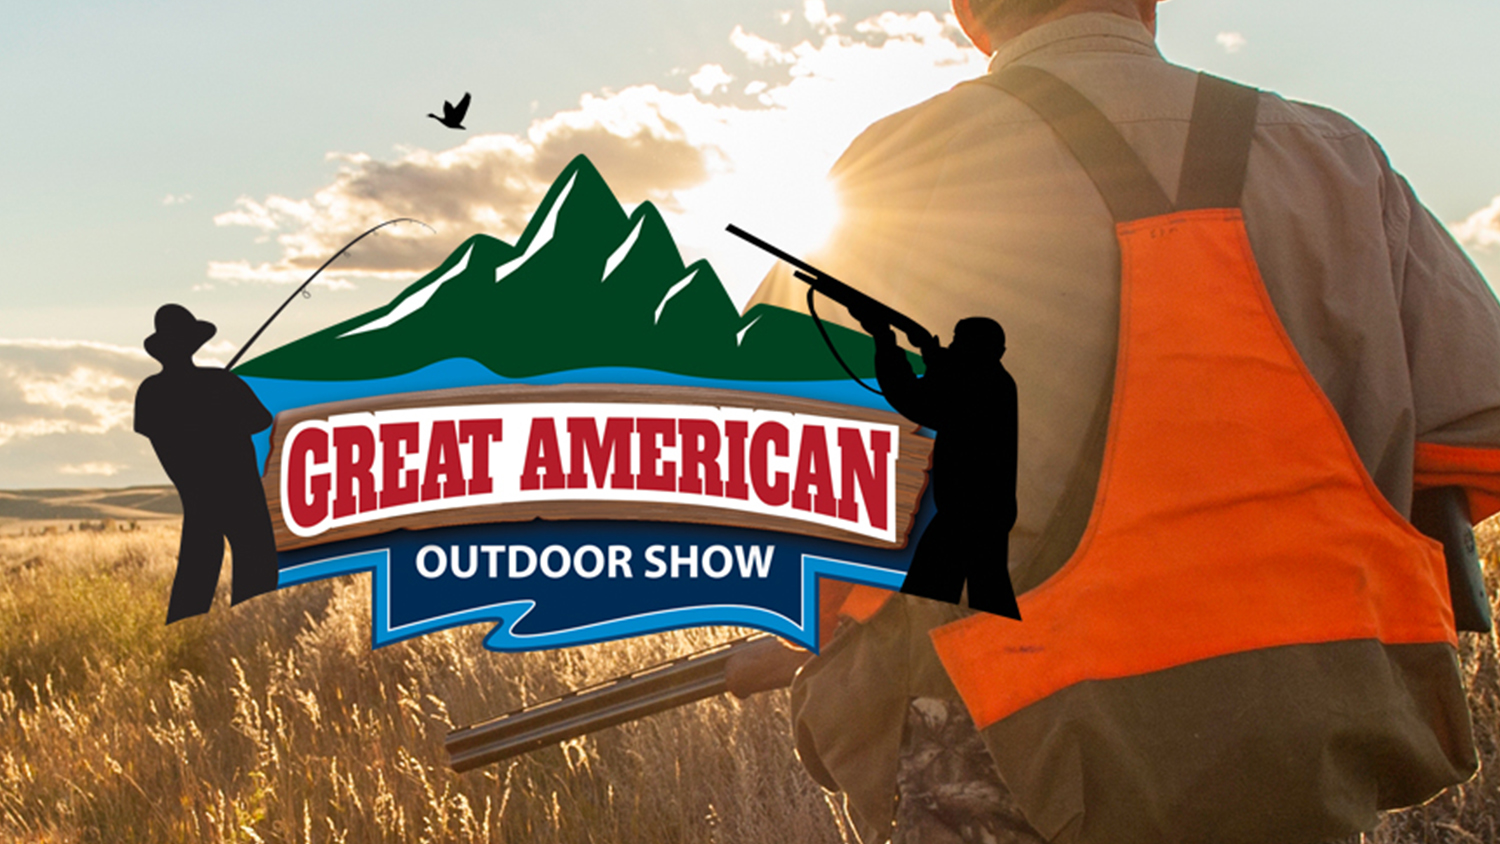 Great American Outdoor Show Events: Sunday, February 7th